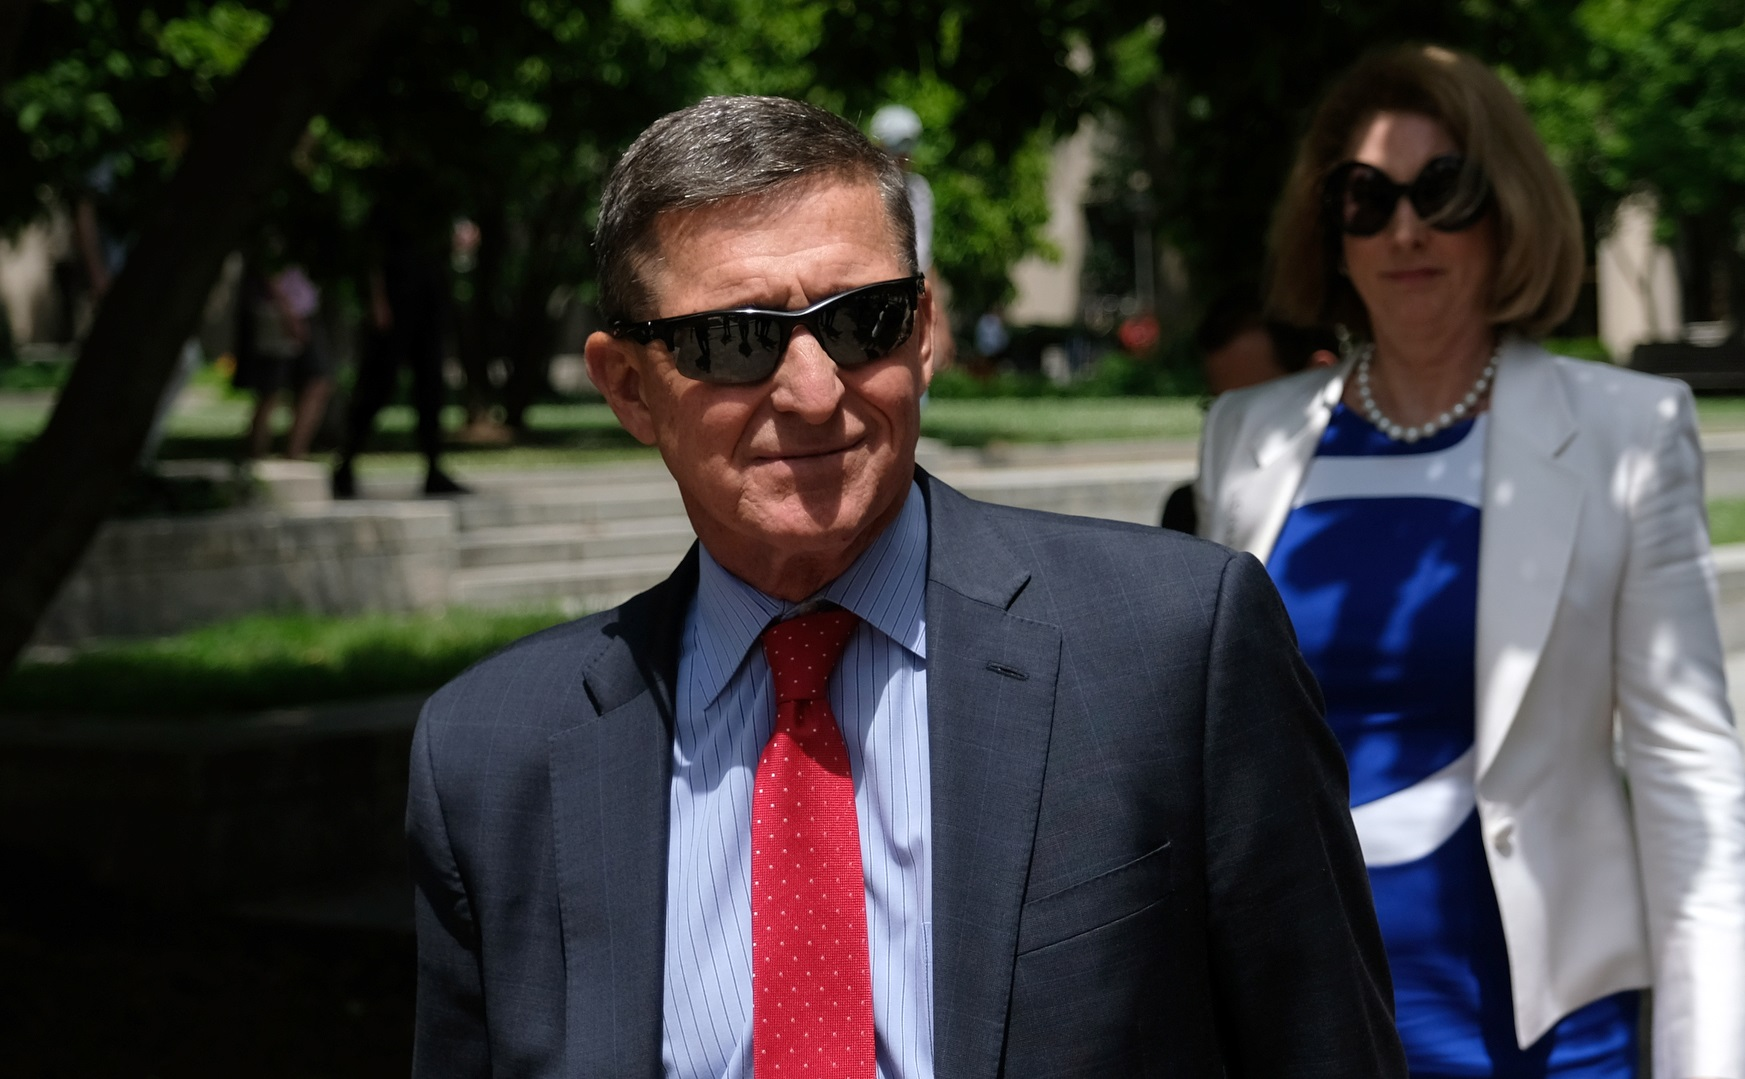 Flynn's Lawyer: There Would Have Been No Guilty Plea If Not for Government Misconduct